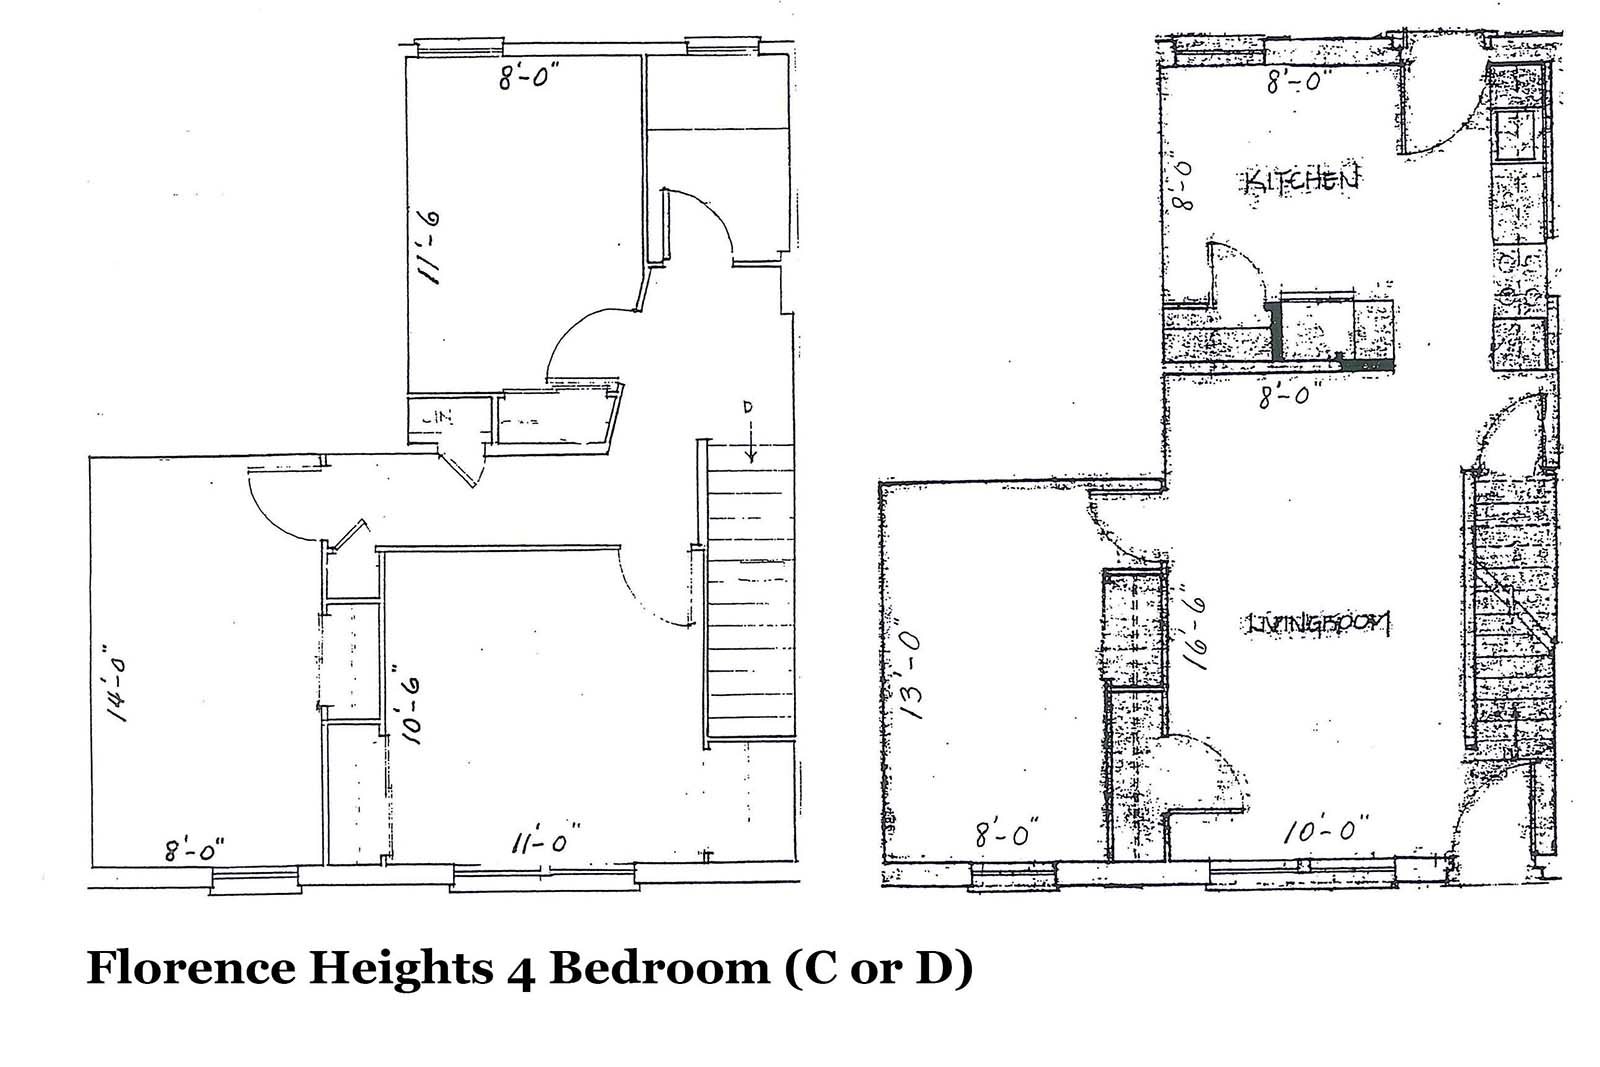 Florence Heights 4 bedroom layout